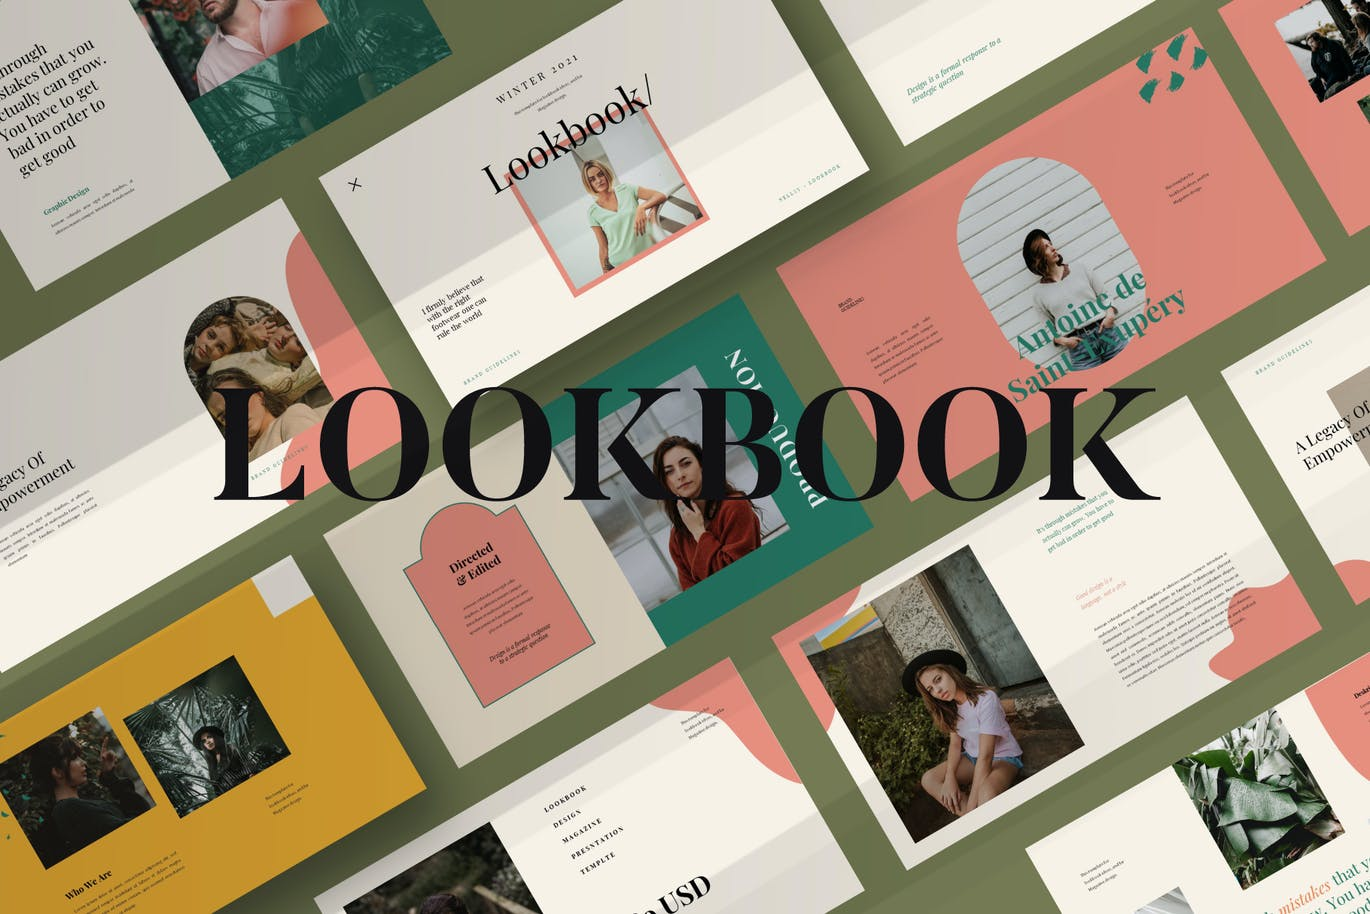 时尚Lookbook风提案简报作品集设计PPT+Keynote模板 Lookbook Powerpoint Template插图3